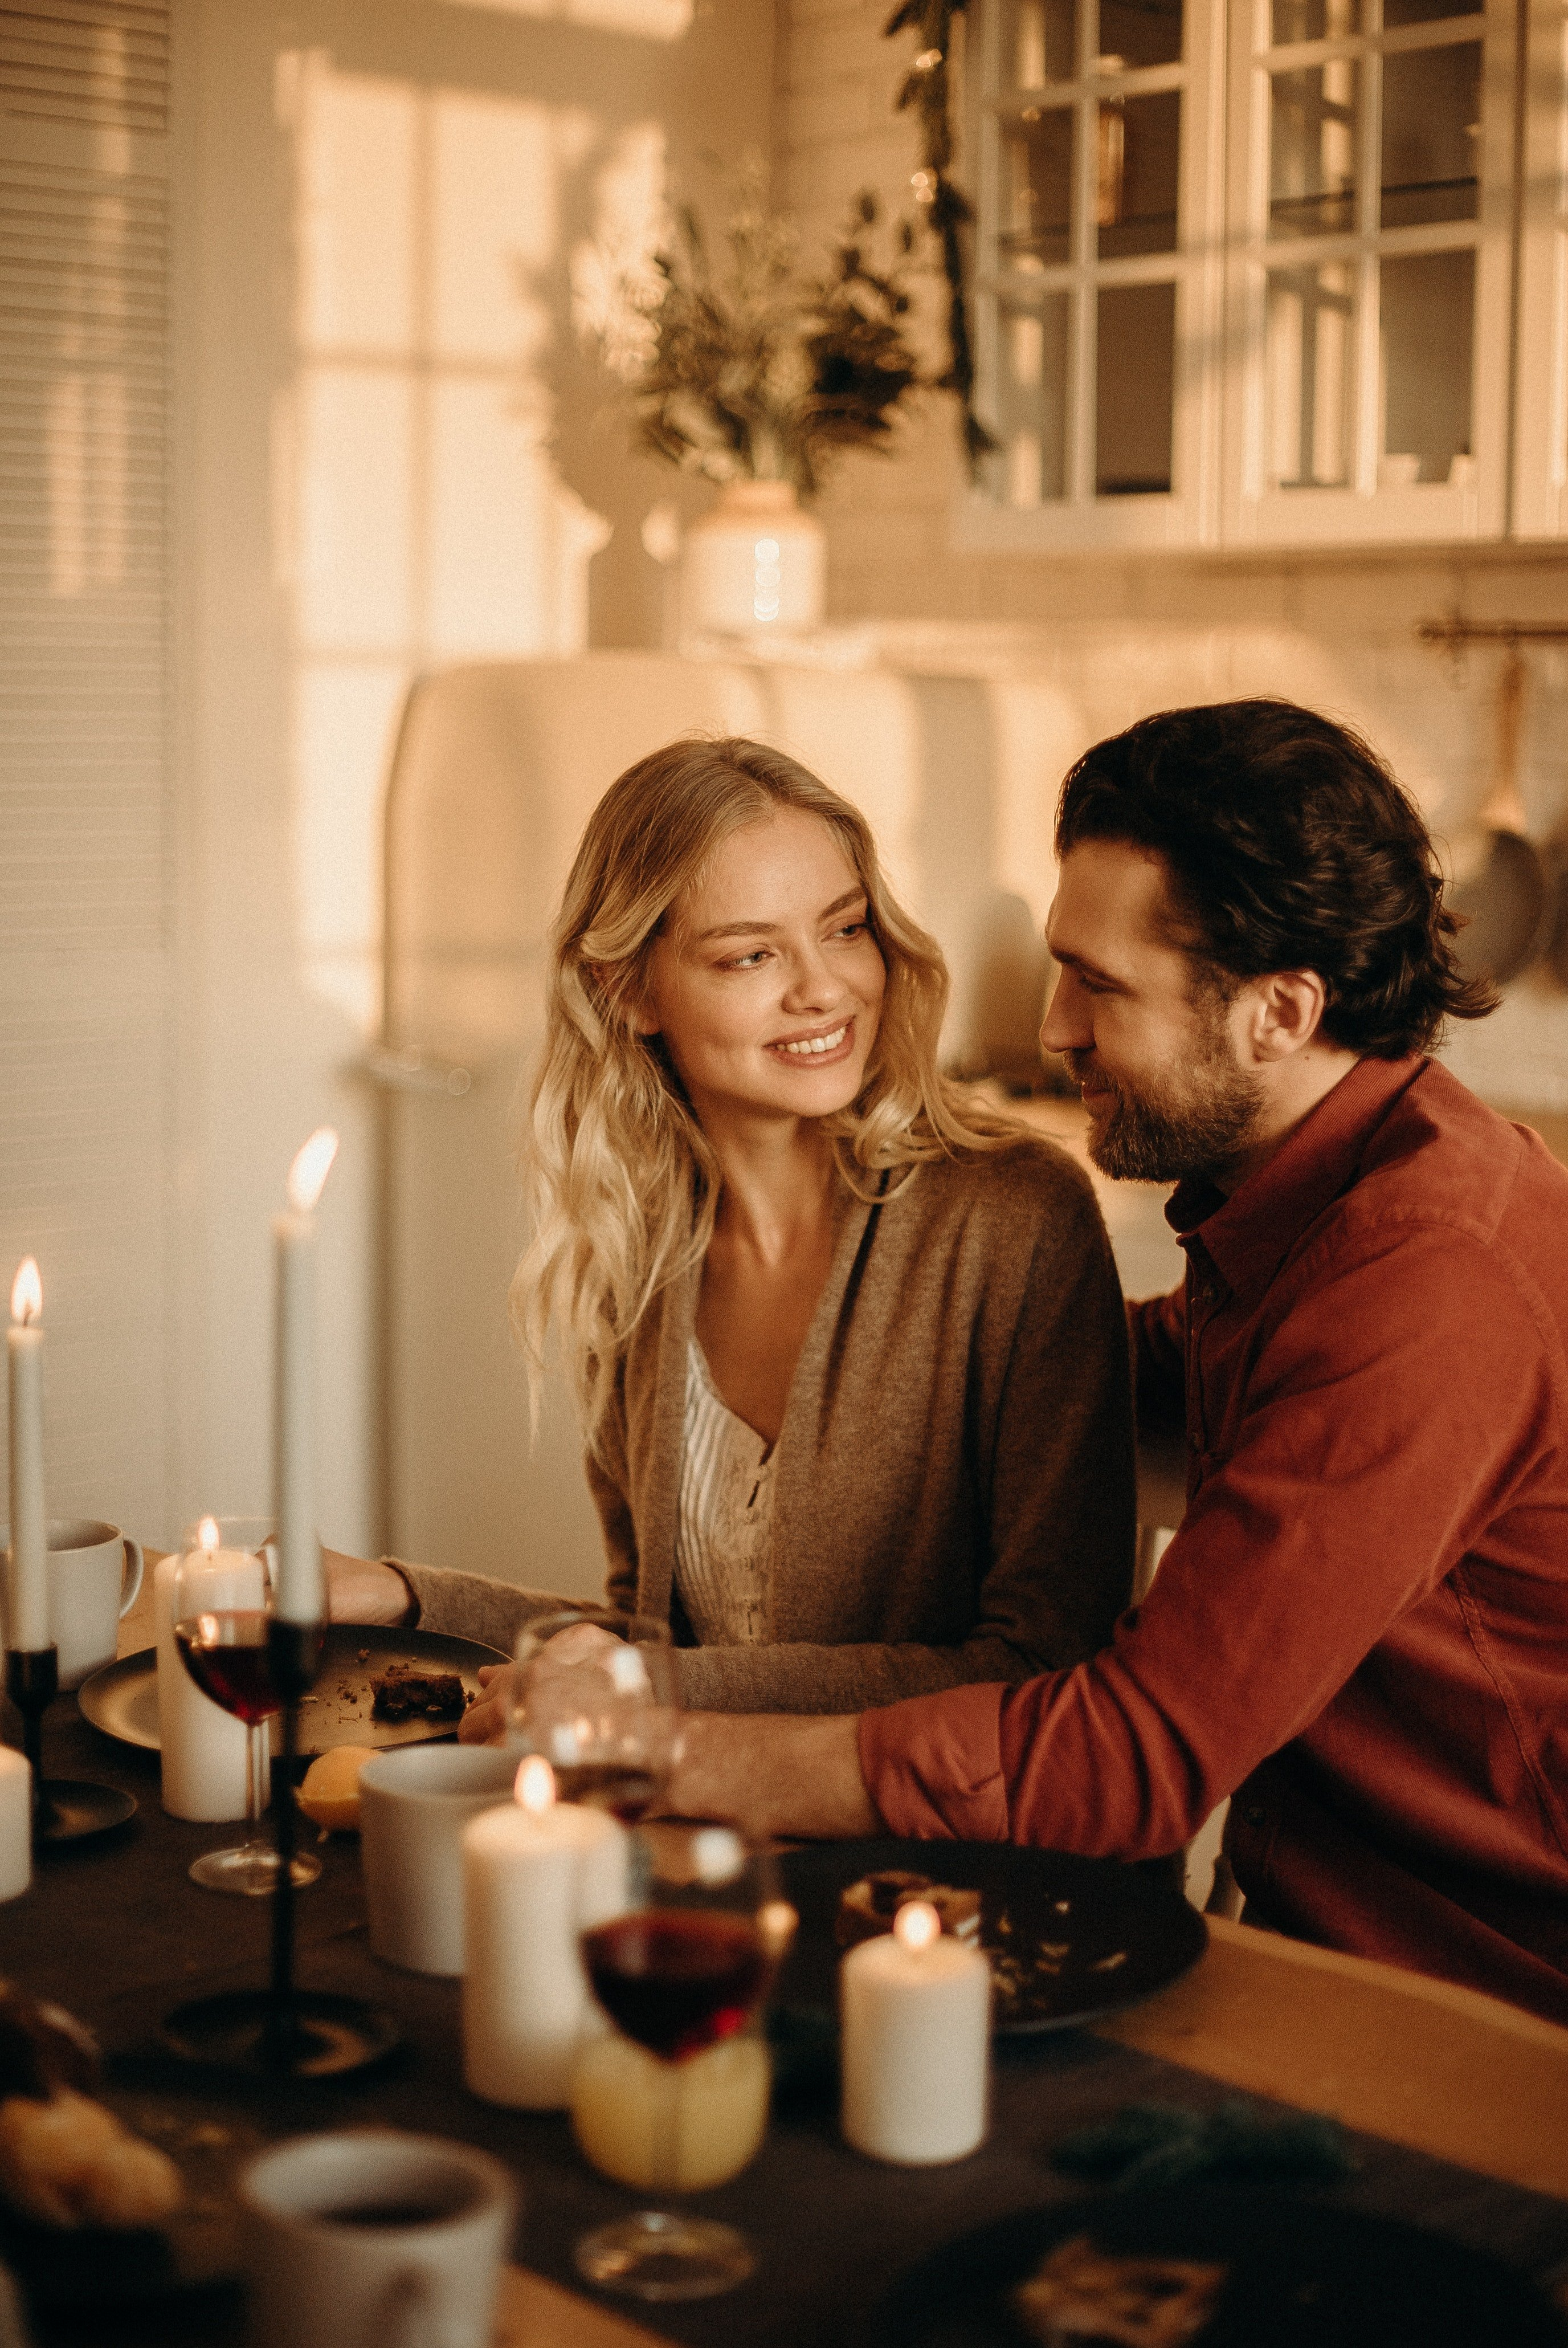 We were having a romantic dinner date, and our kids were away for the weekend. | Photo: Pexels